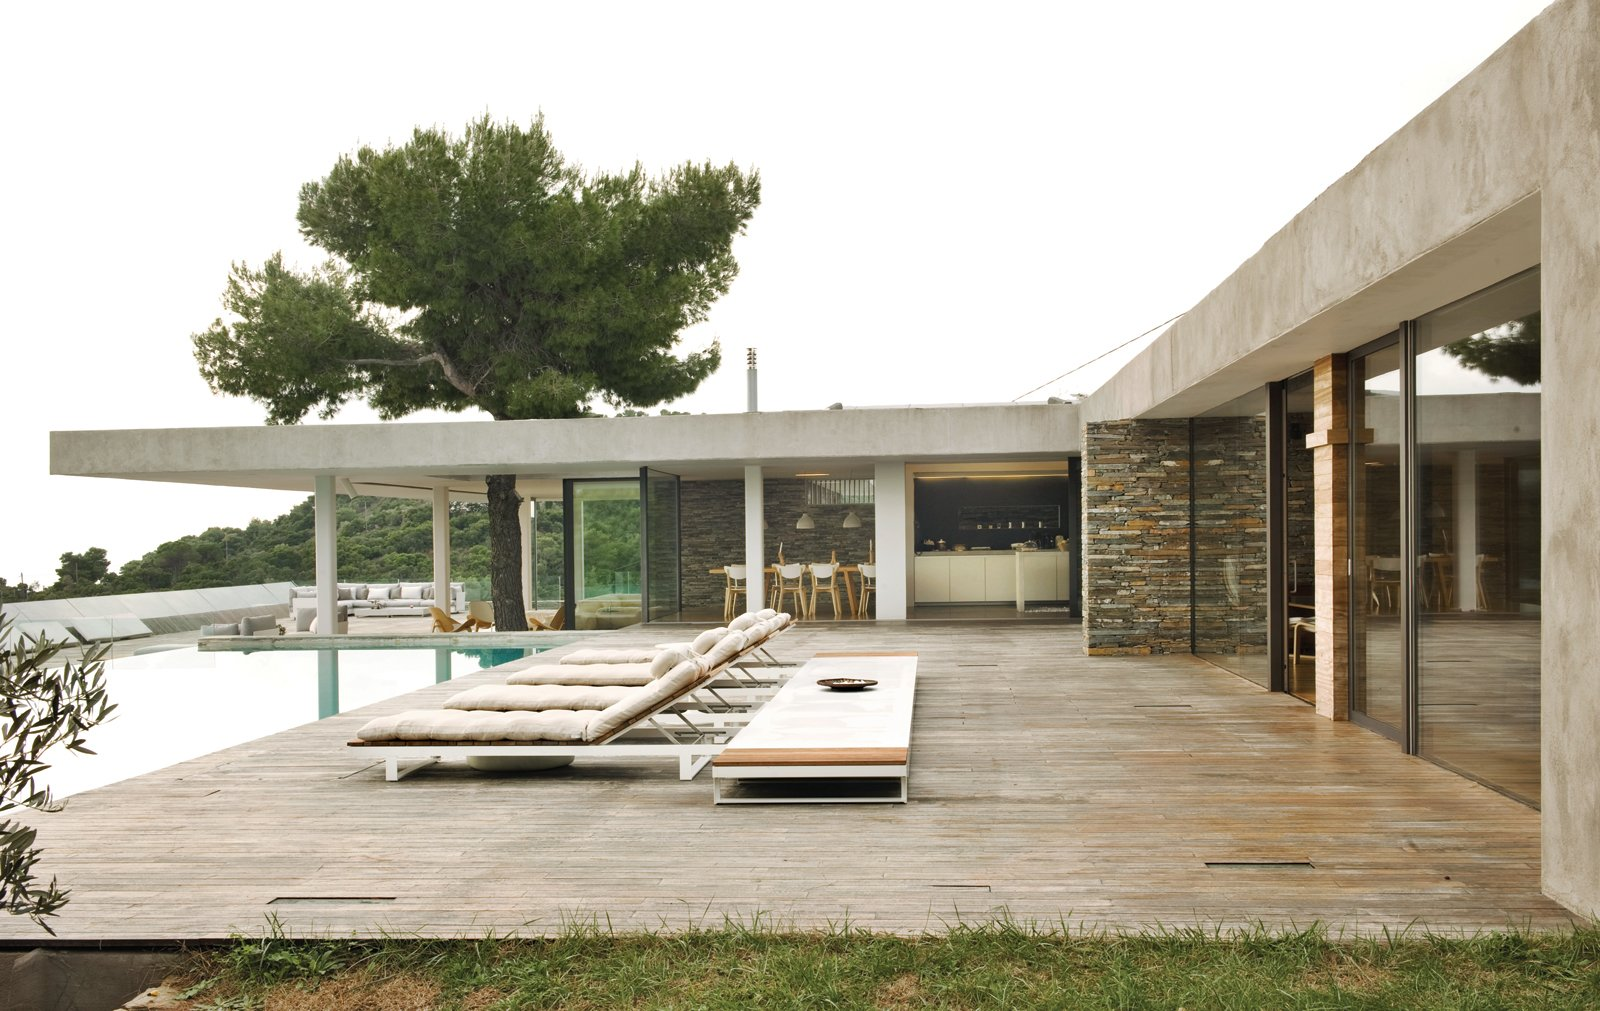 Articles about idyllic vacation home greece on Dwell.com